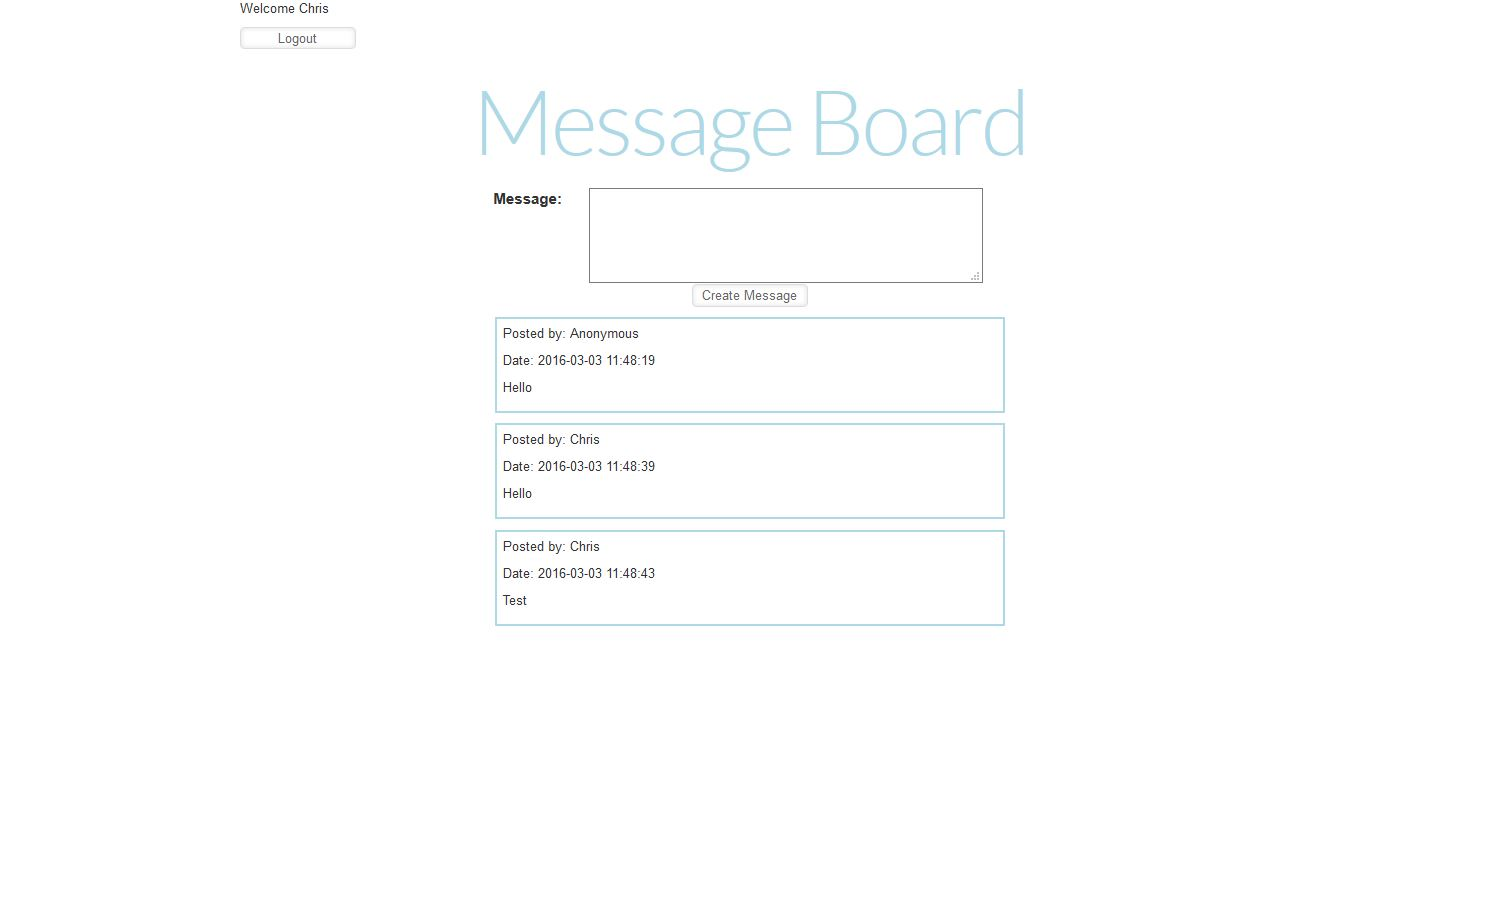 Image of what the message board app looks like